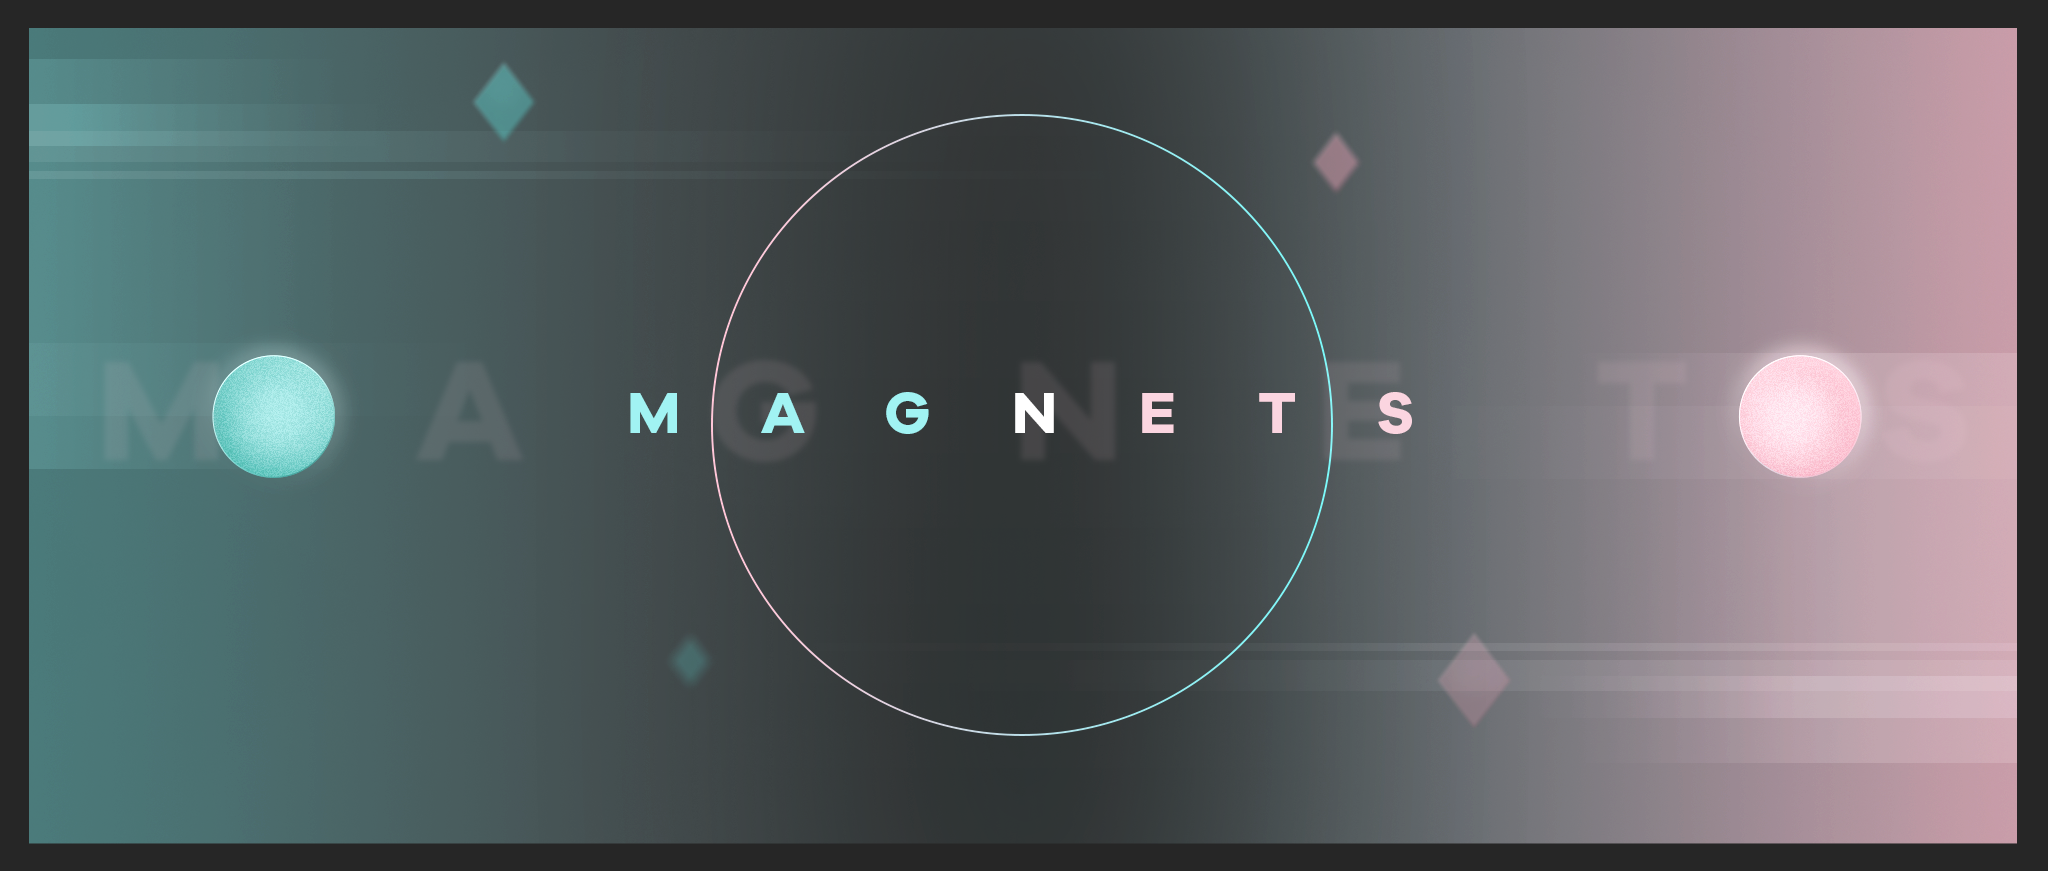 Magnets – Style Frame_04-5